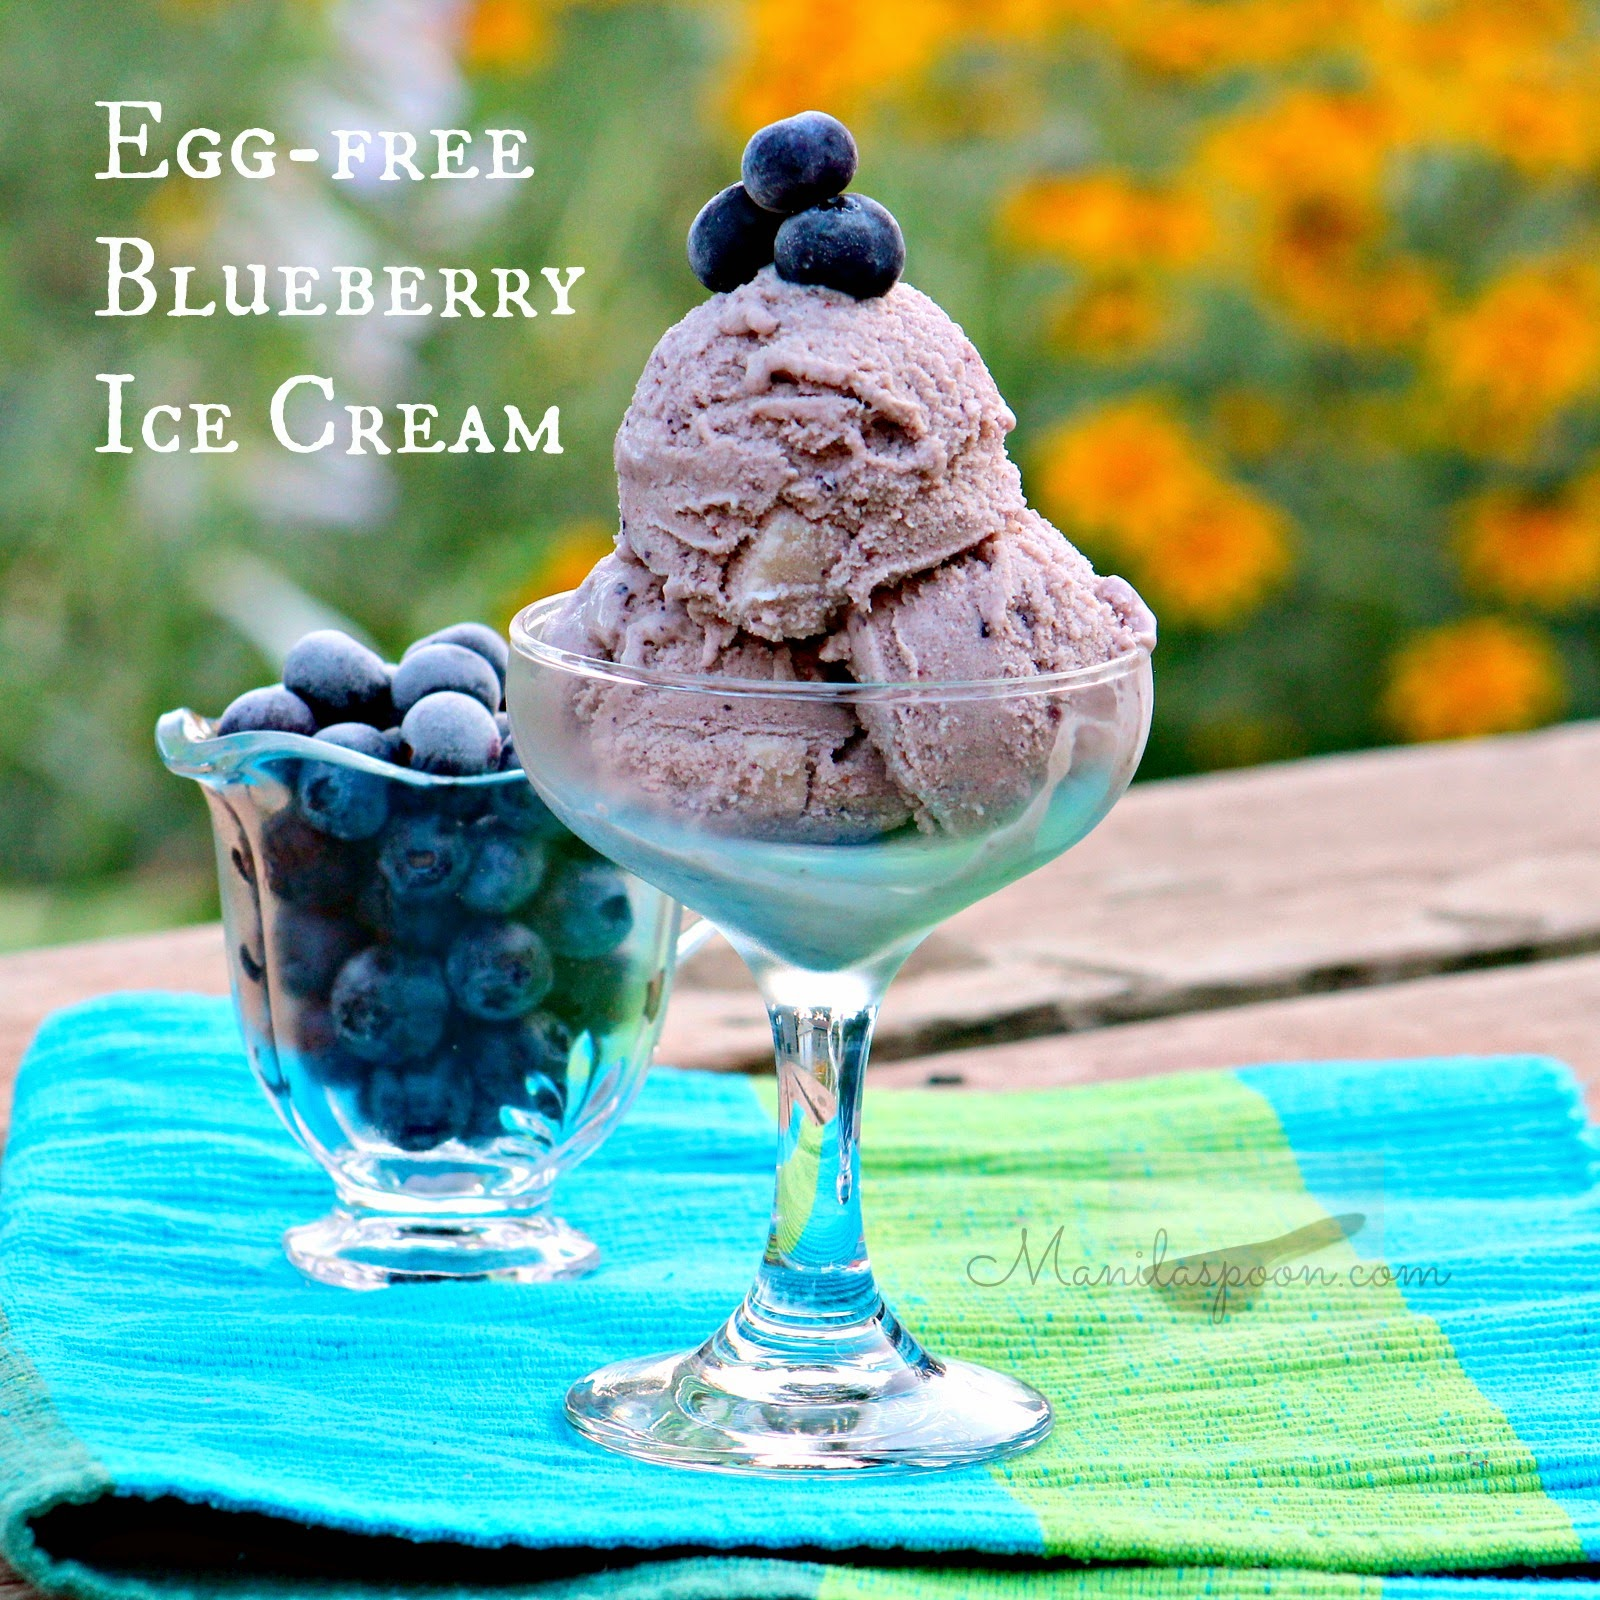 Loaded with juicy fresh blueberries is this yummy and easy recipe for Egg-free Blueberry Ice Cream! #egg #free #blueberry #ice #cream